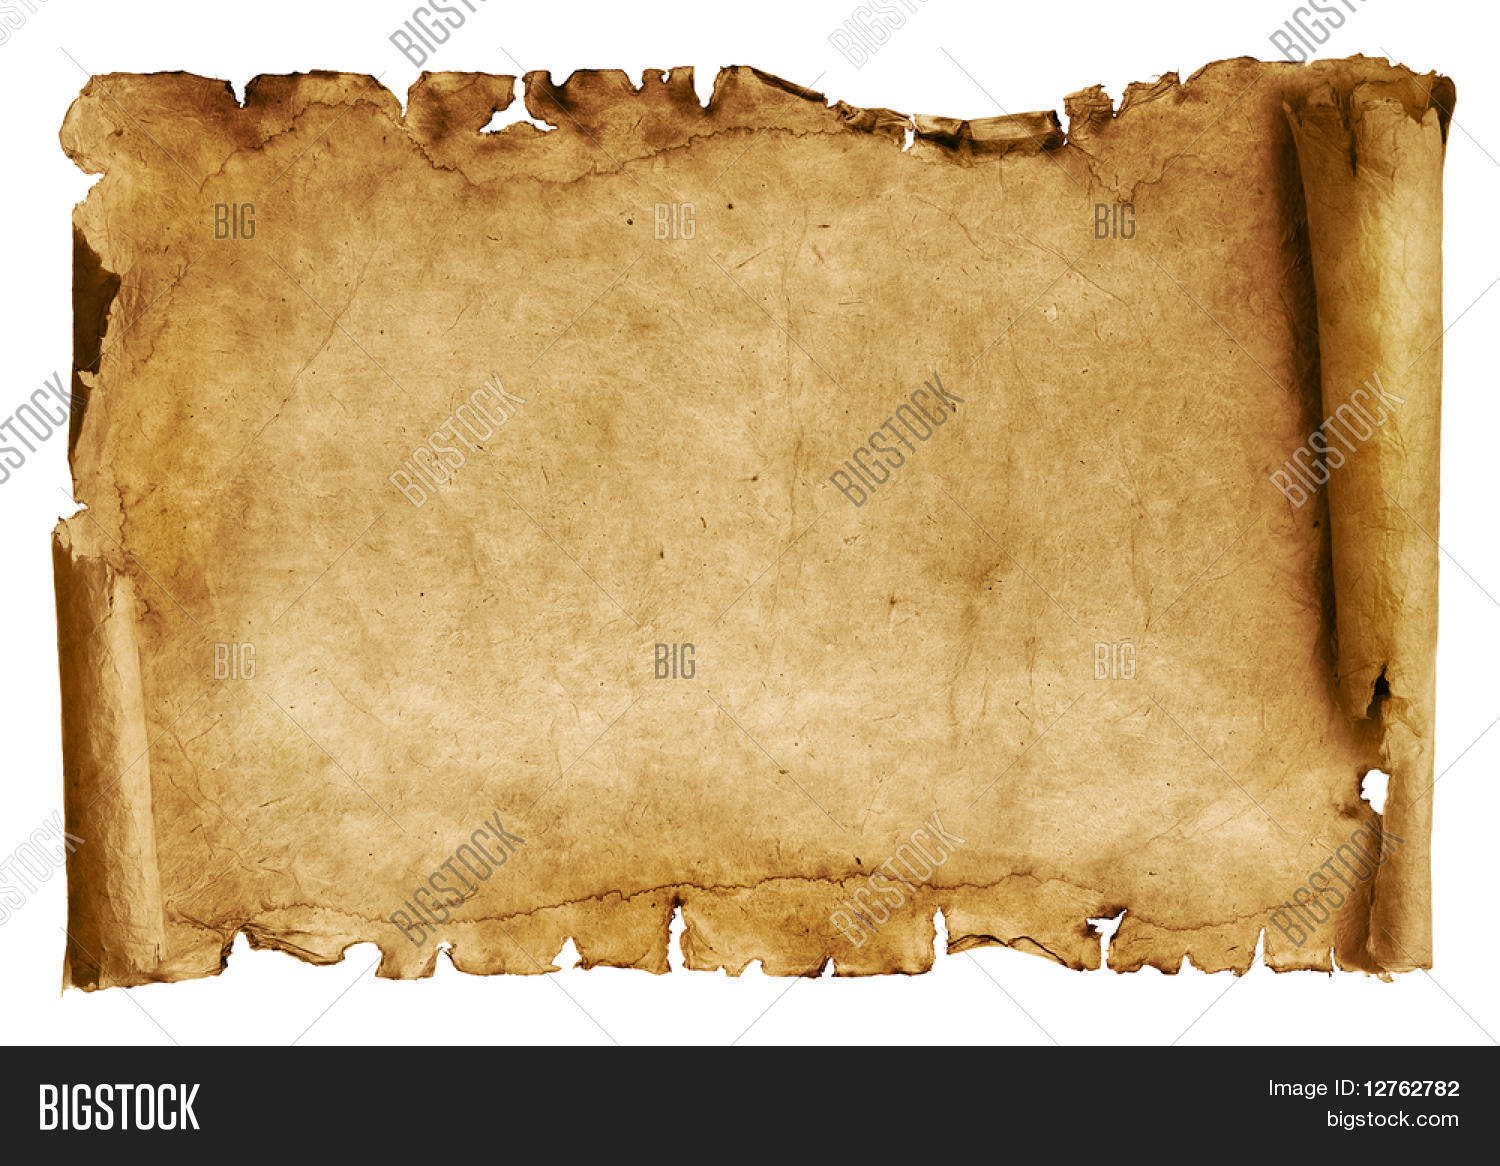 Fondo De Papel Viejo: Old Paper Scroll Isolated On White Image & Photo